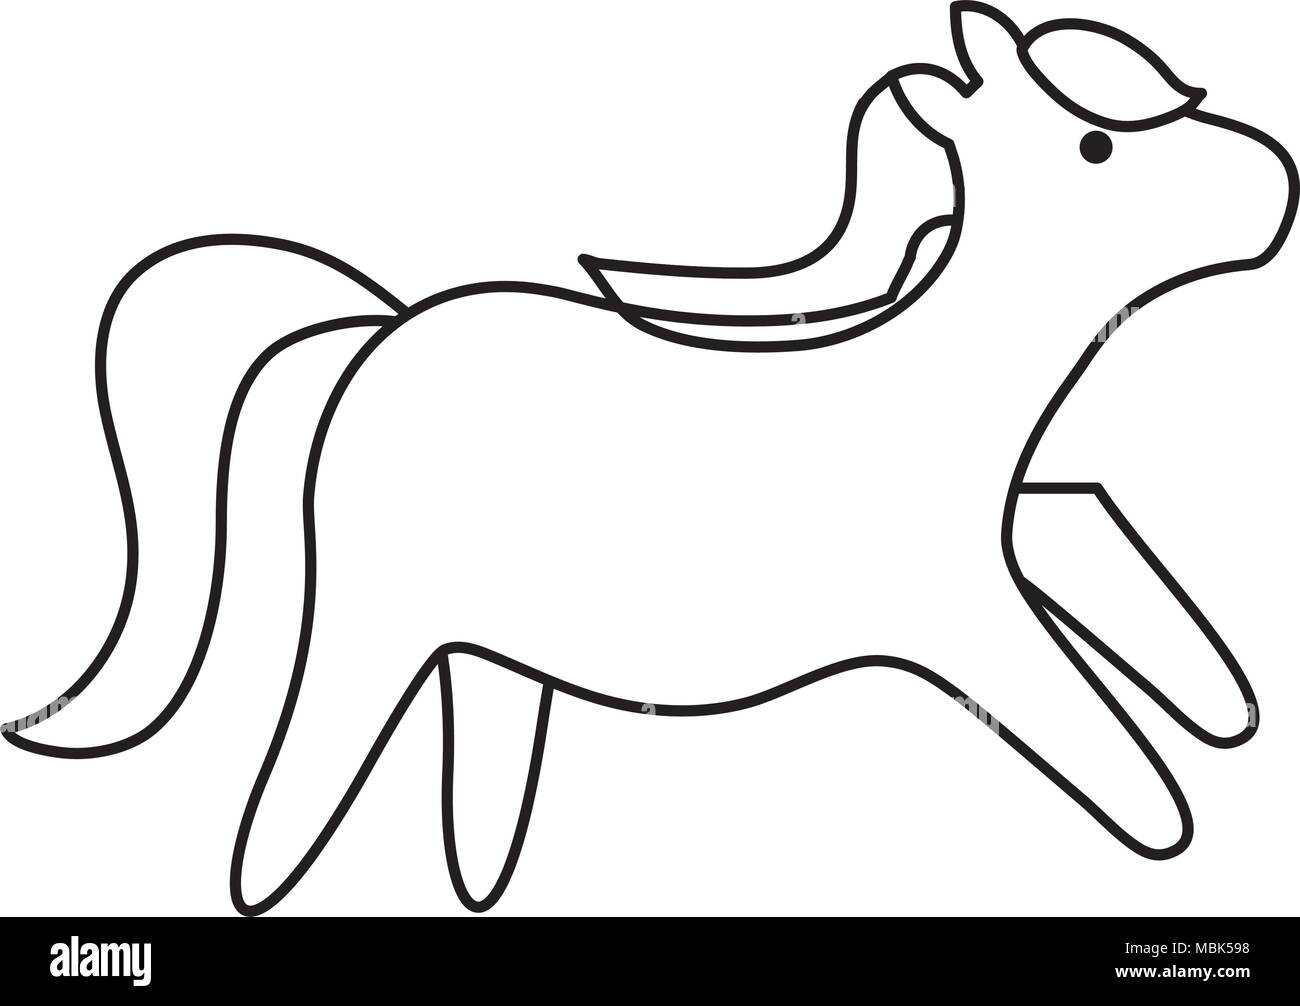 cute horse over white background, vector illustration - Stock Image